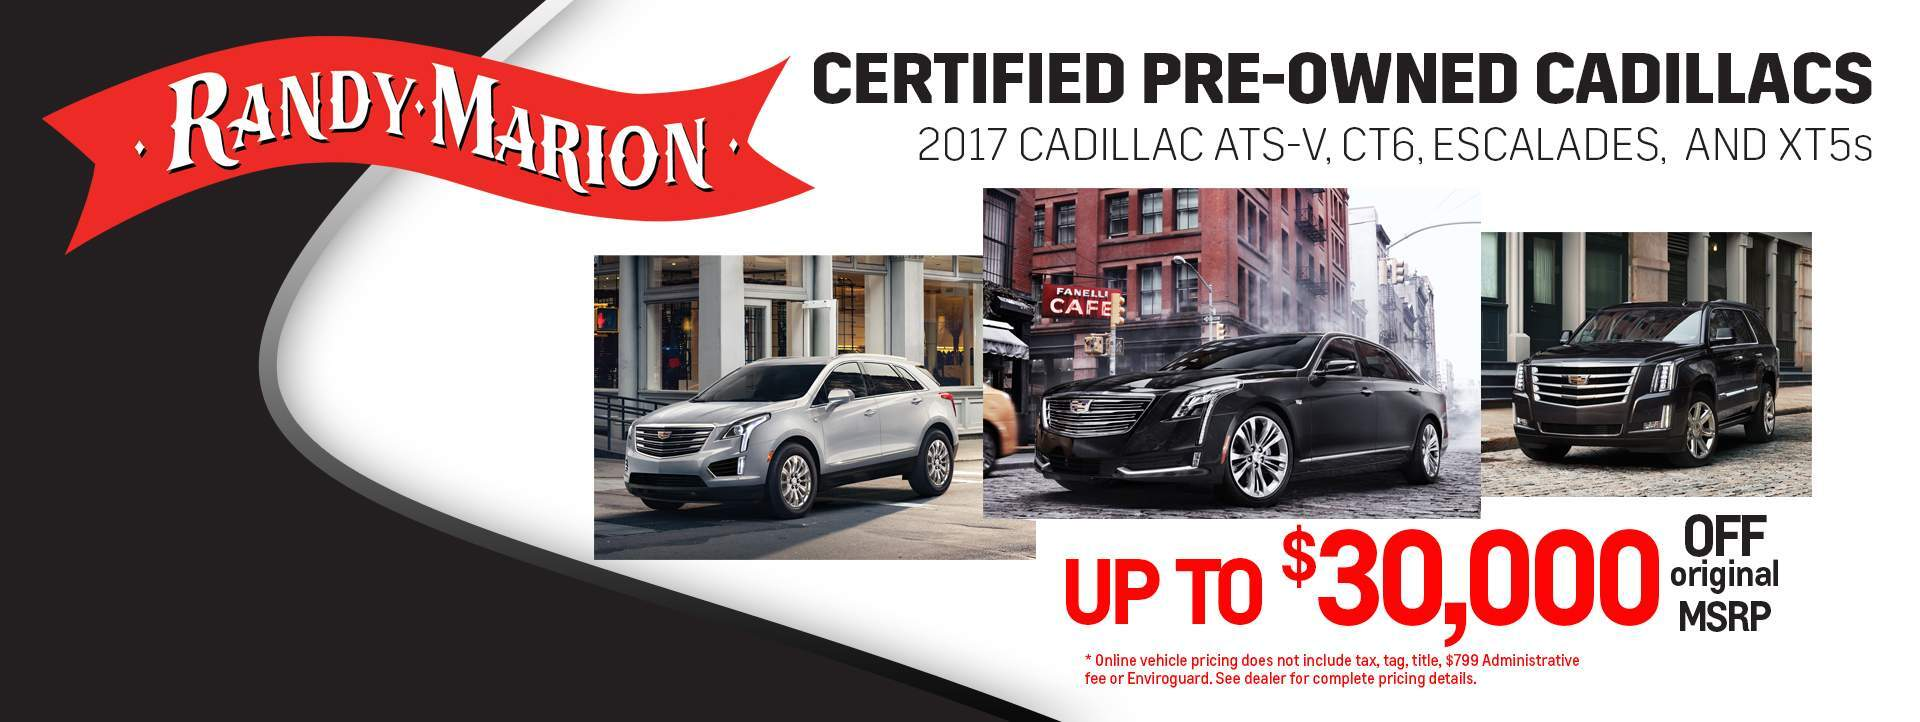 Randy Marion Certified Pre-Owned Cadillacs